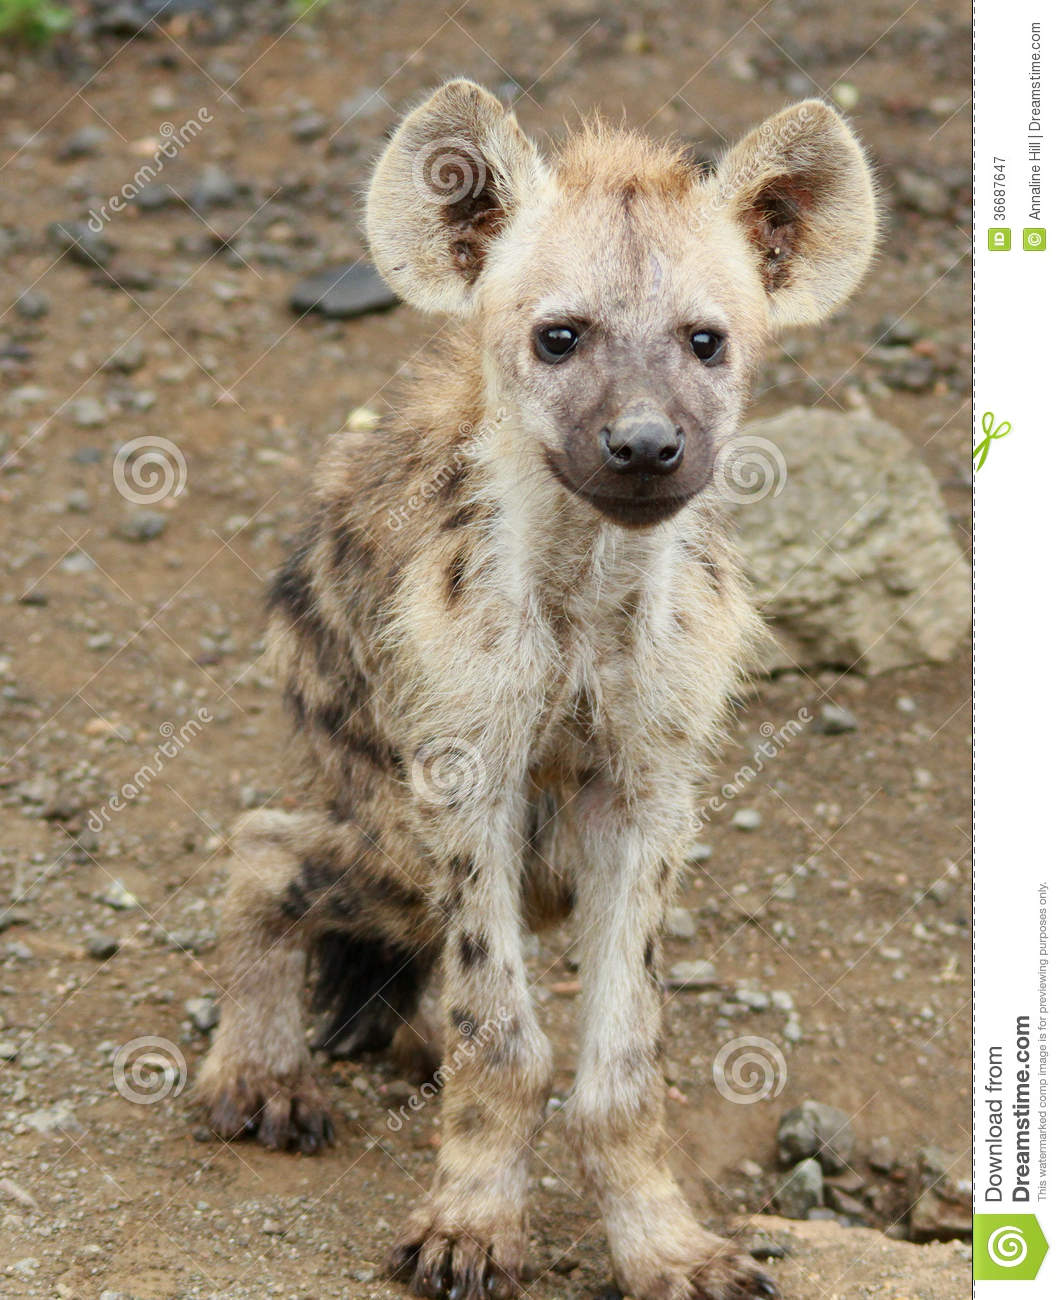 Baby Hyena: Baby Hyena Stock Image. Image Of Africa, Crooked, Clumsy